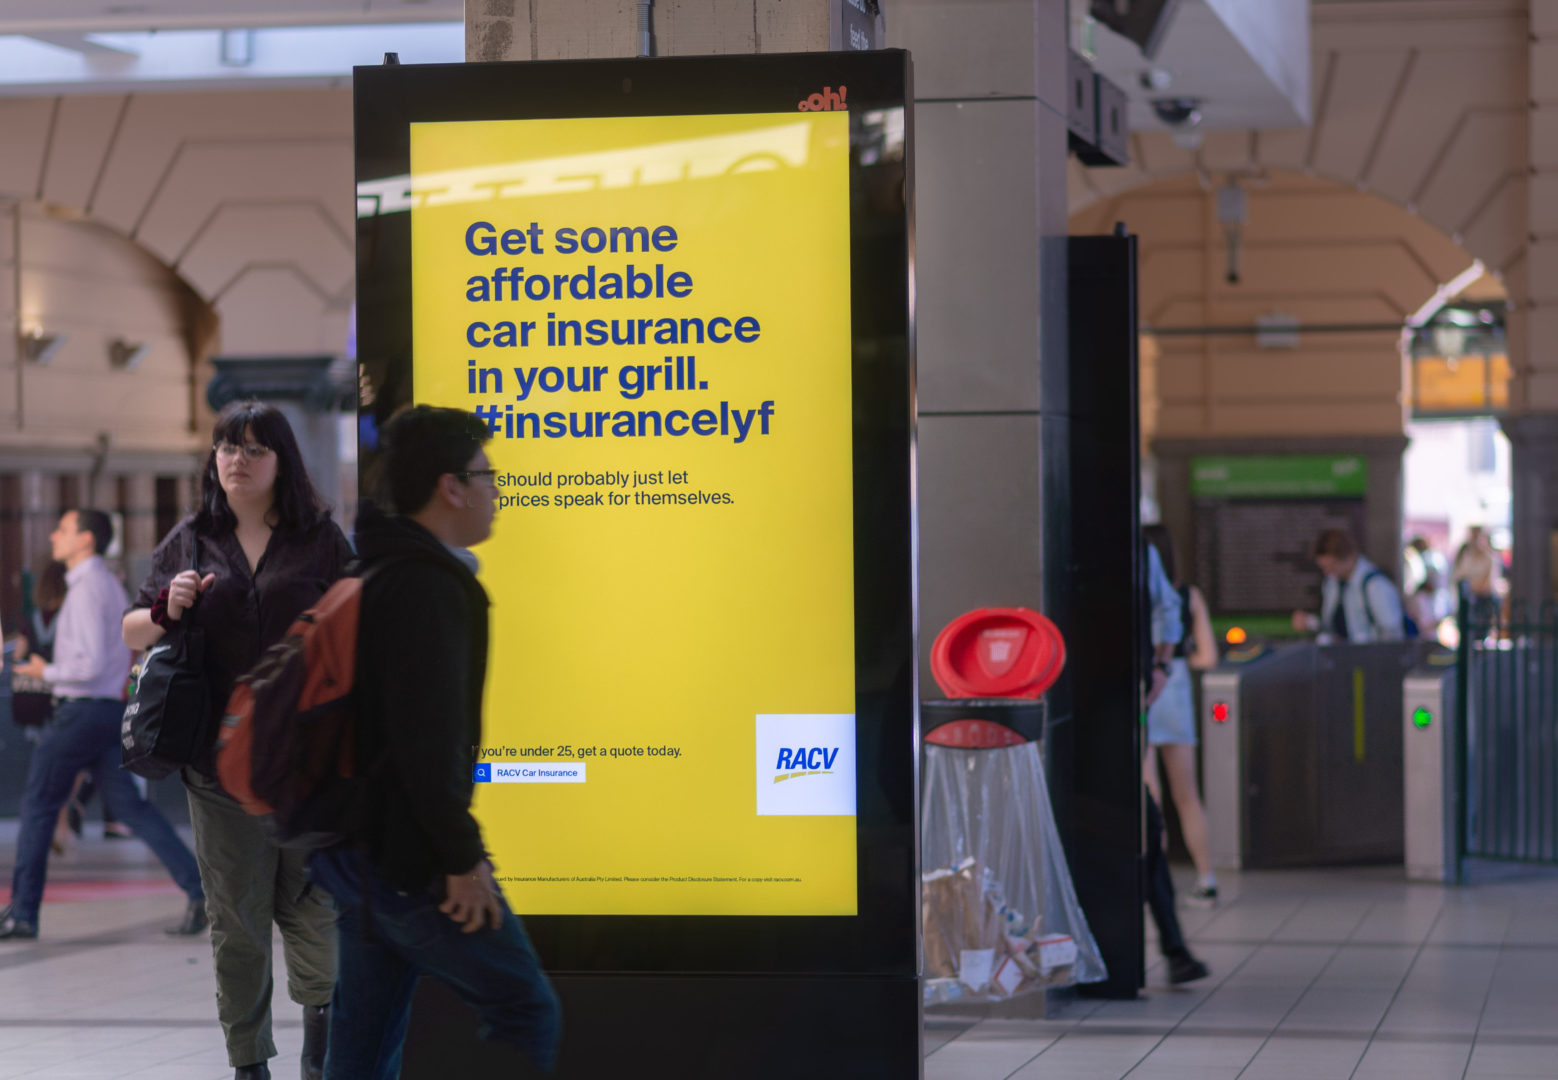 RACV Under 25 Car Insurance — By All Means